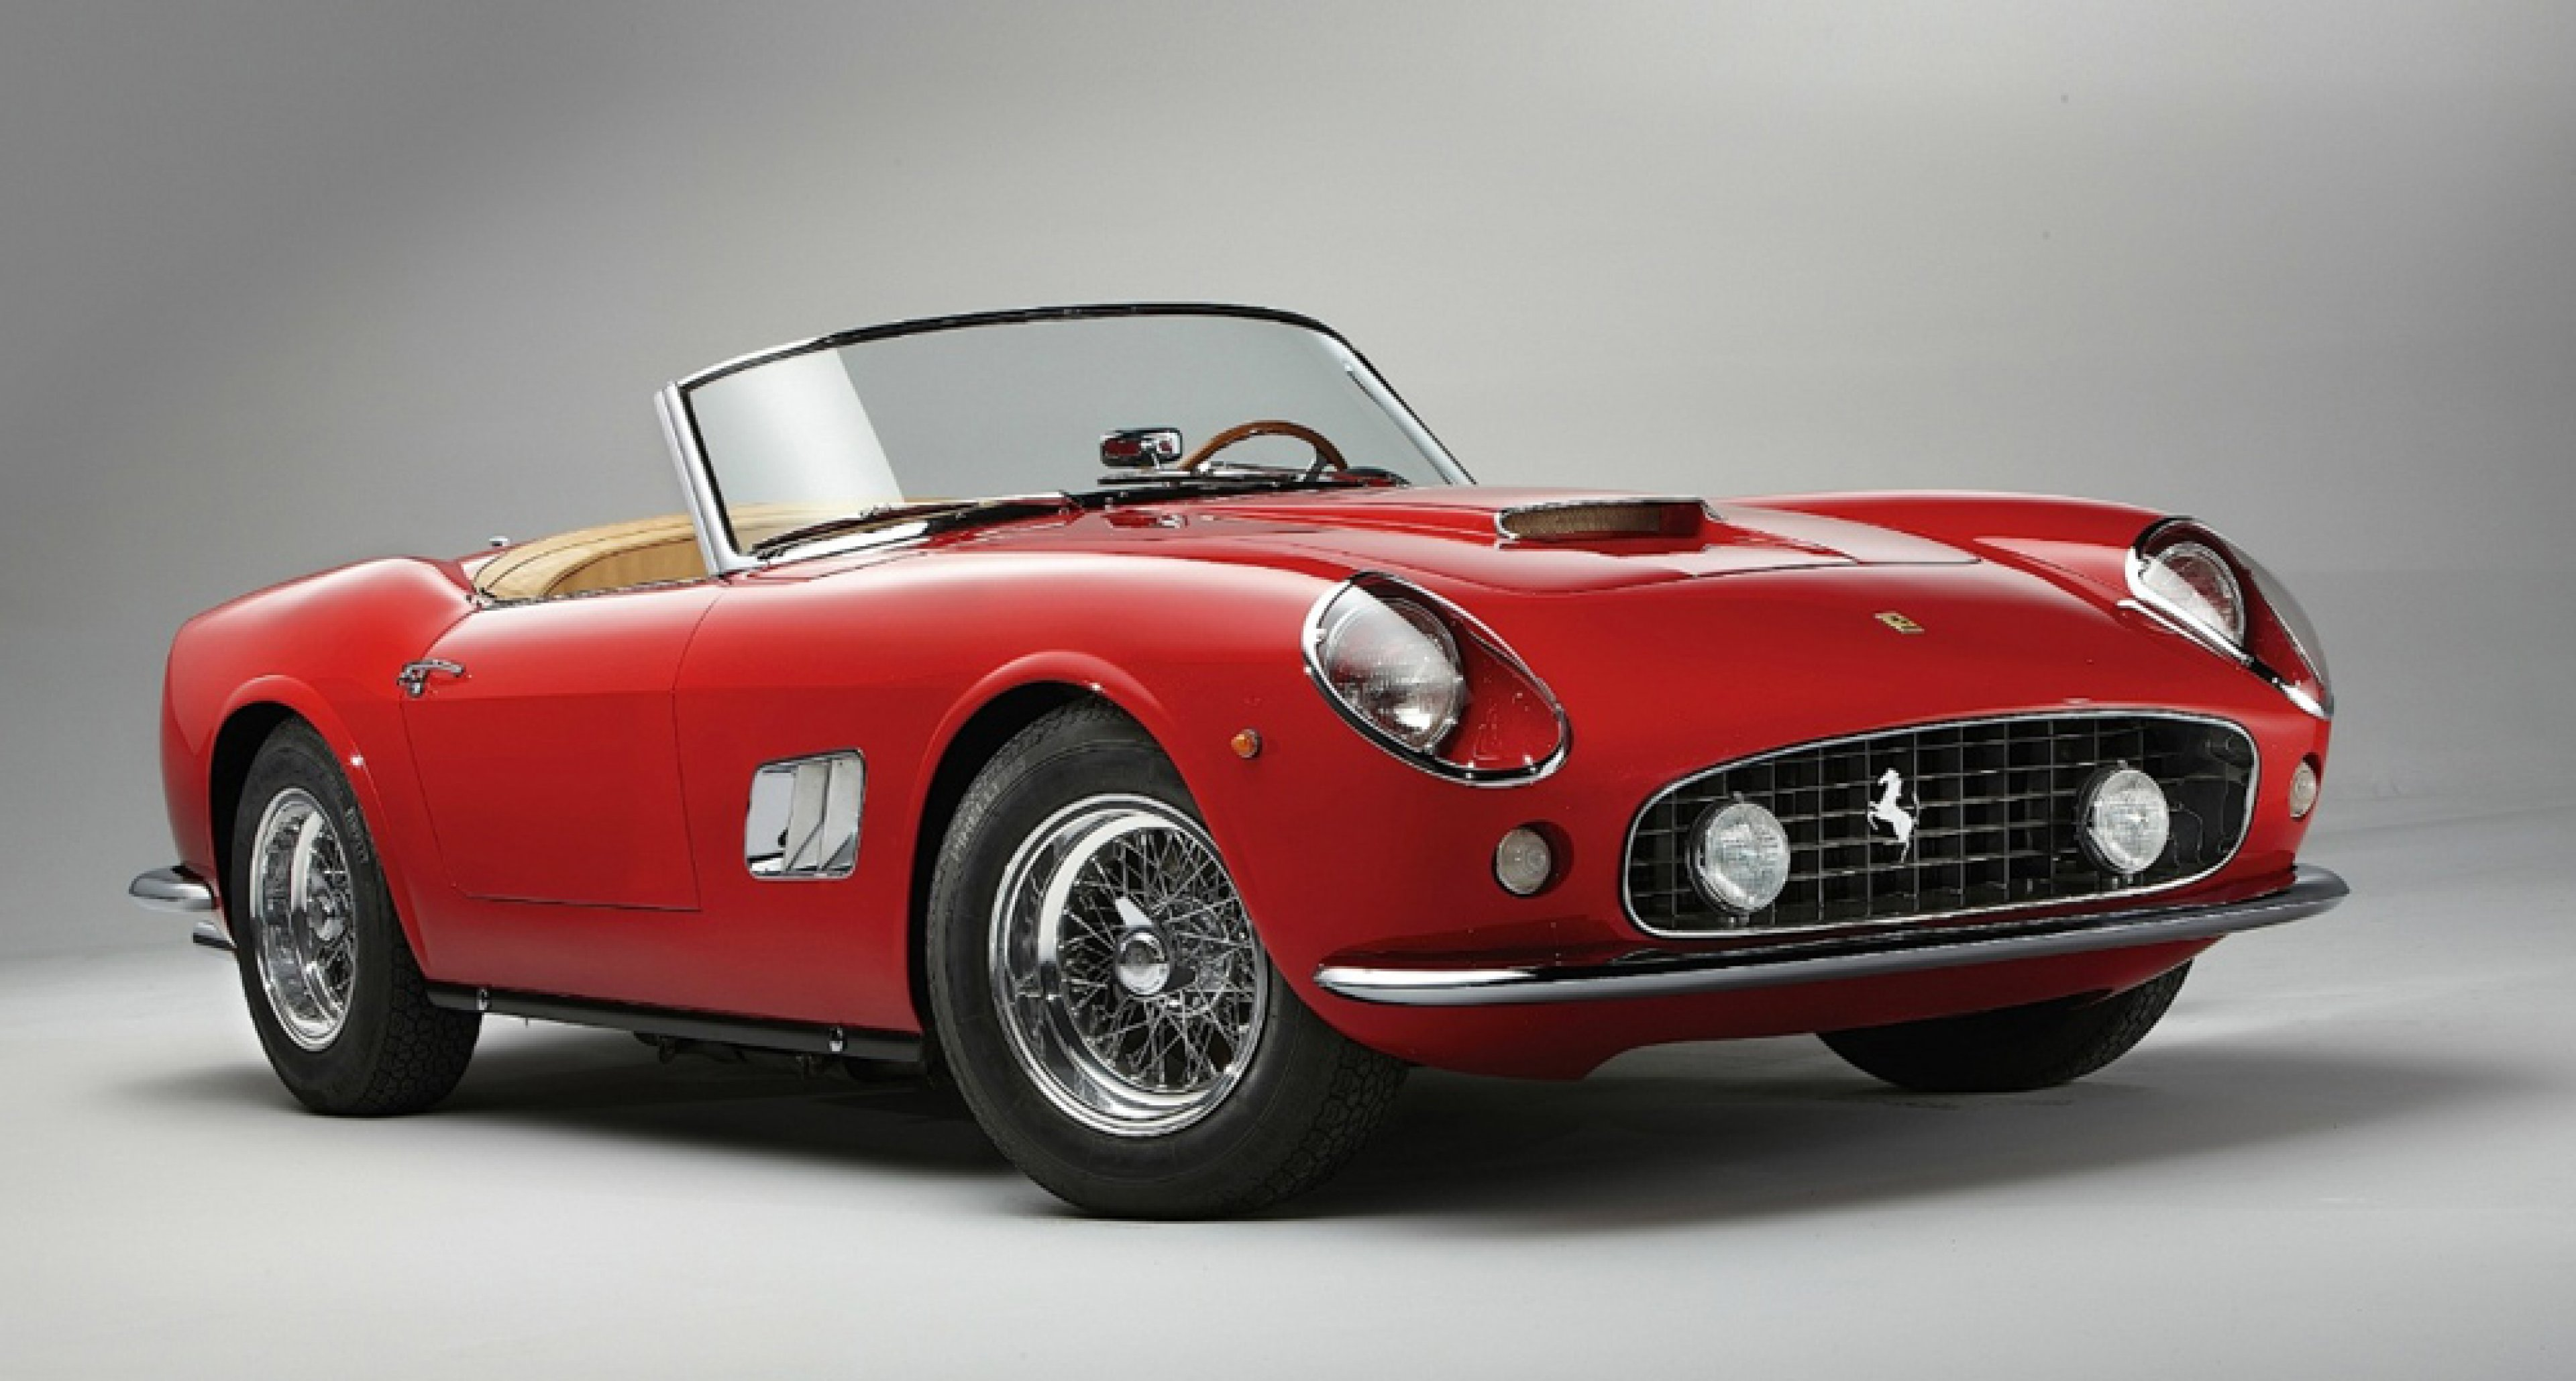 1961 Ferrari 250 GT SWB California Spider, sold by Gooding & Company in August 2014 for $ 15,180,000.